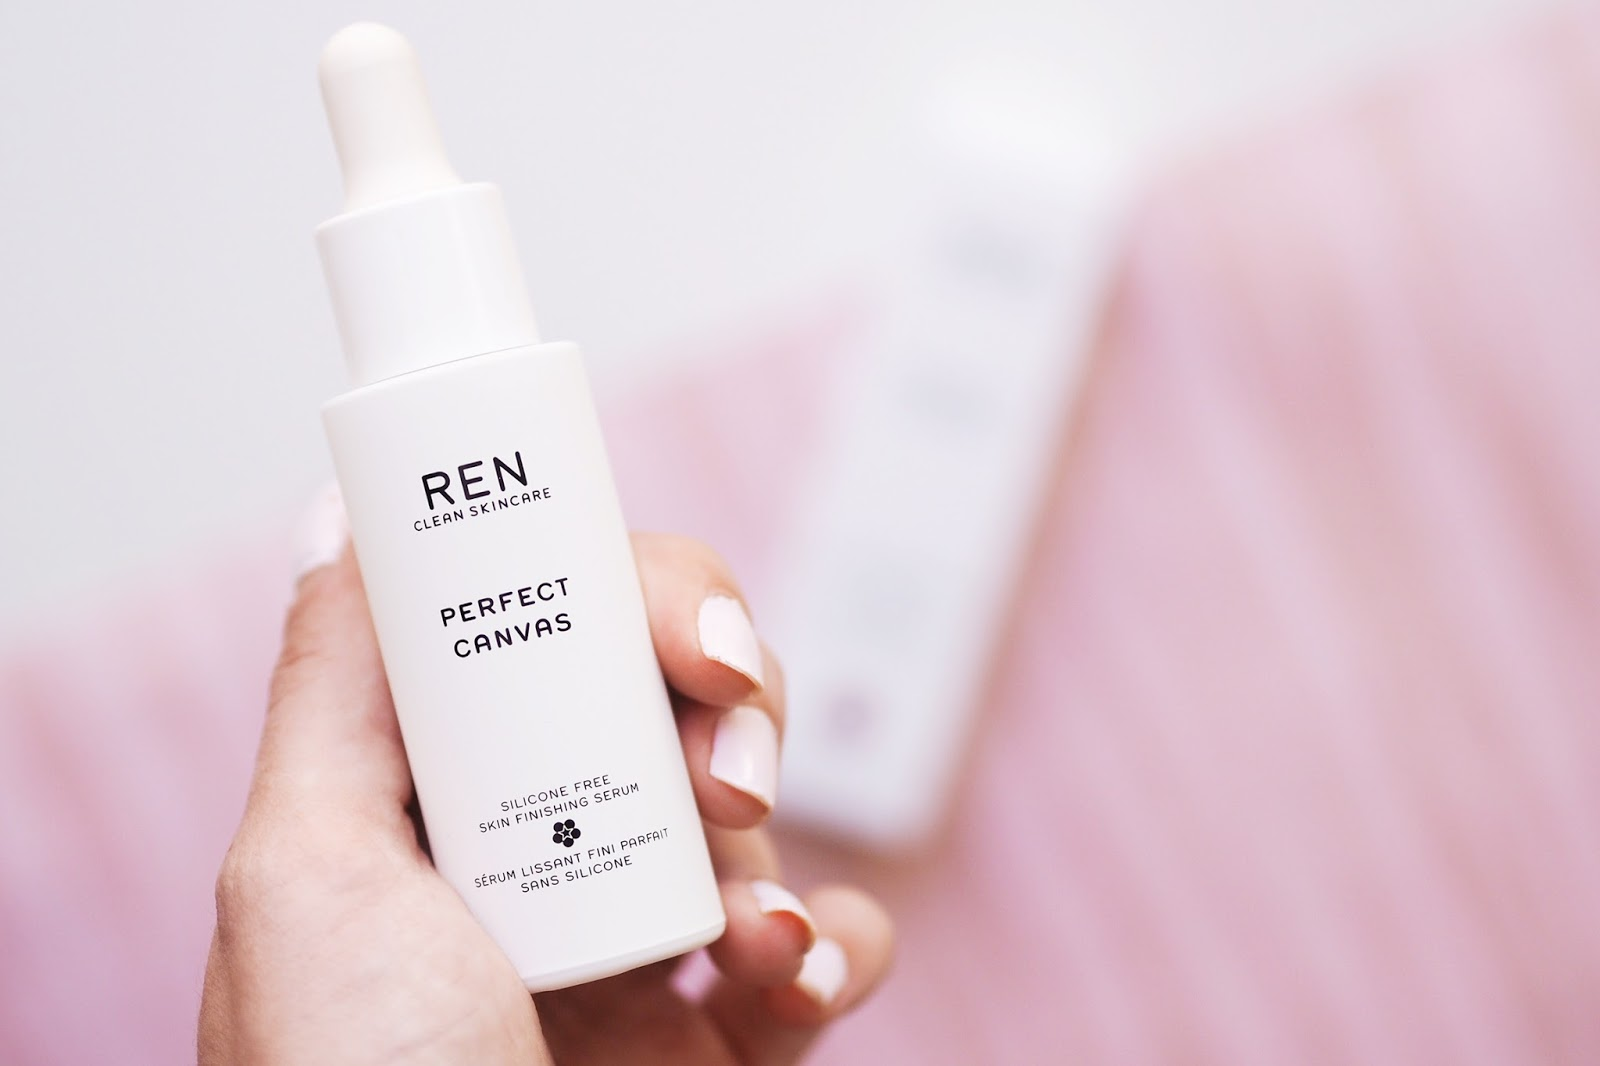 REN Perfect Canvas review